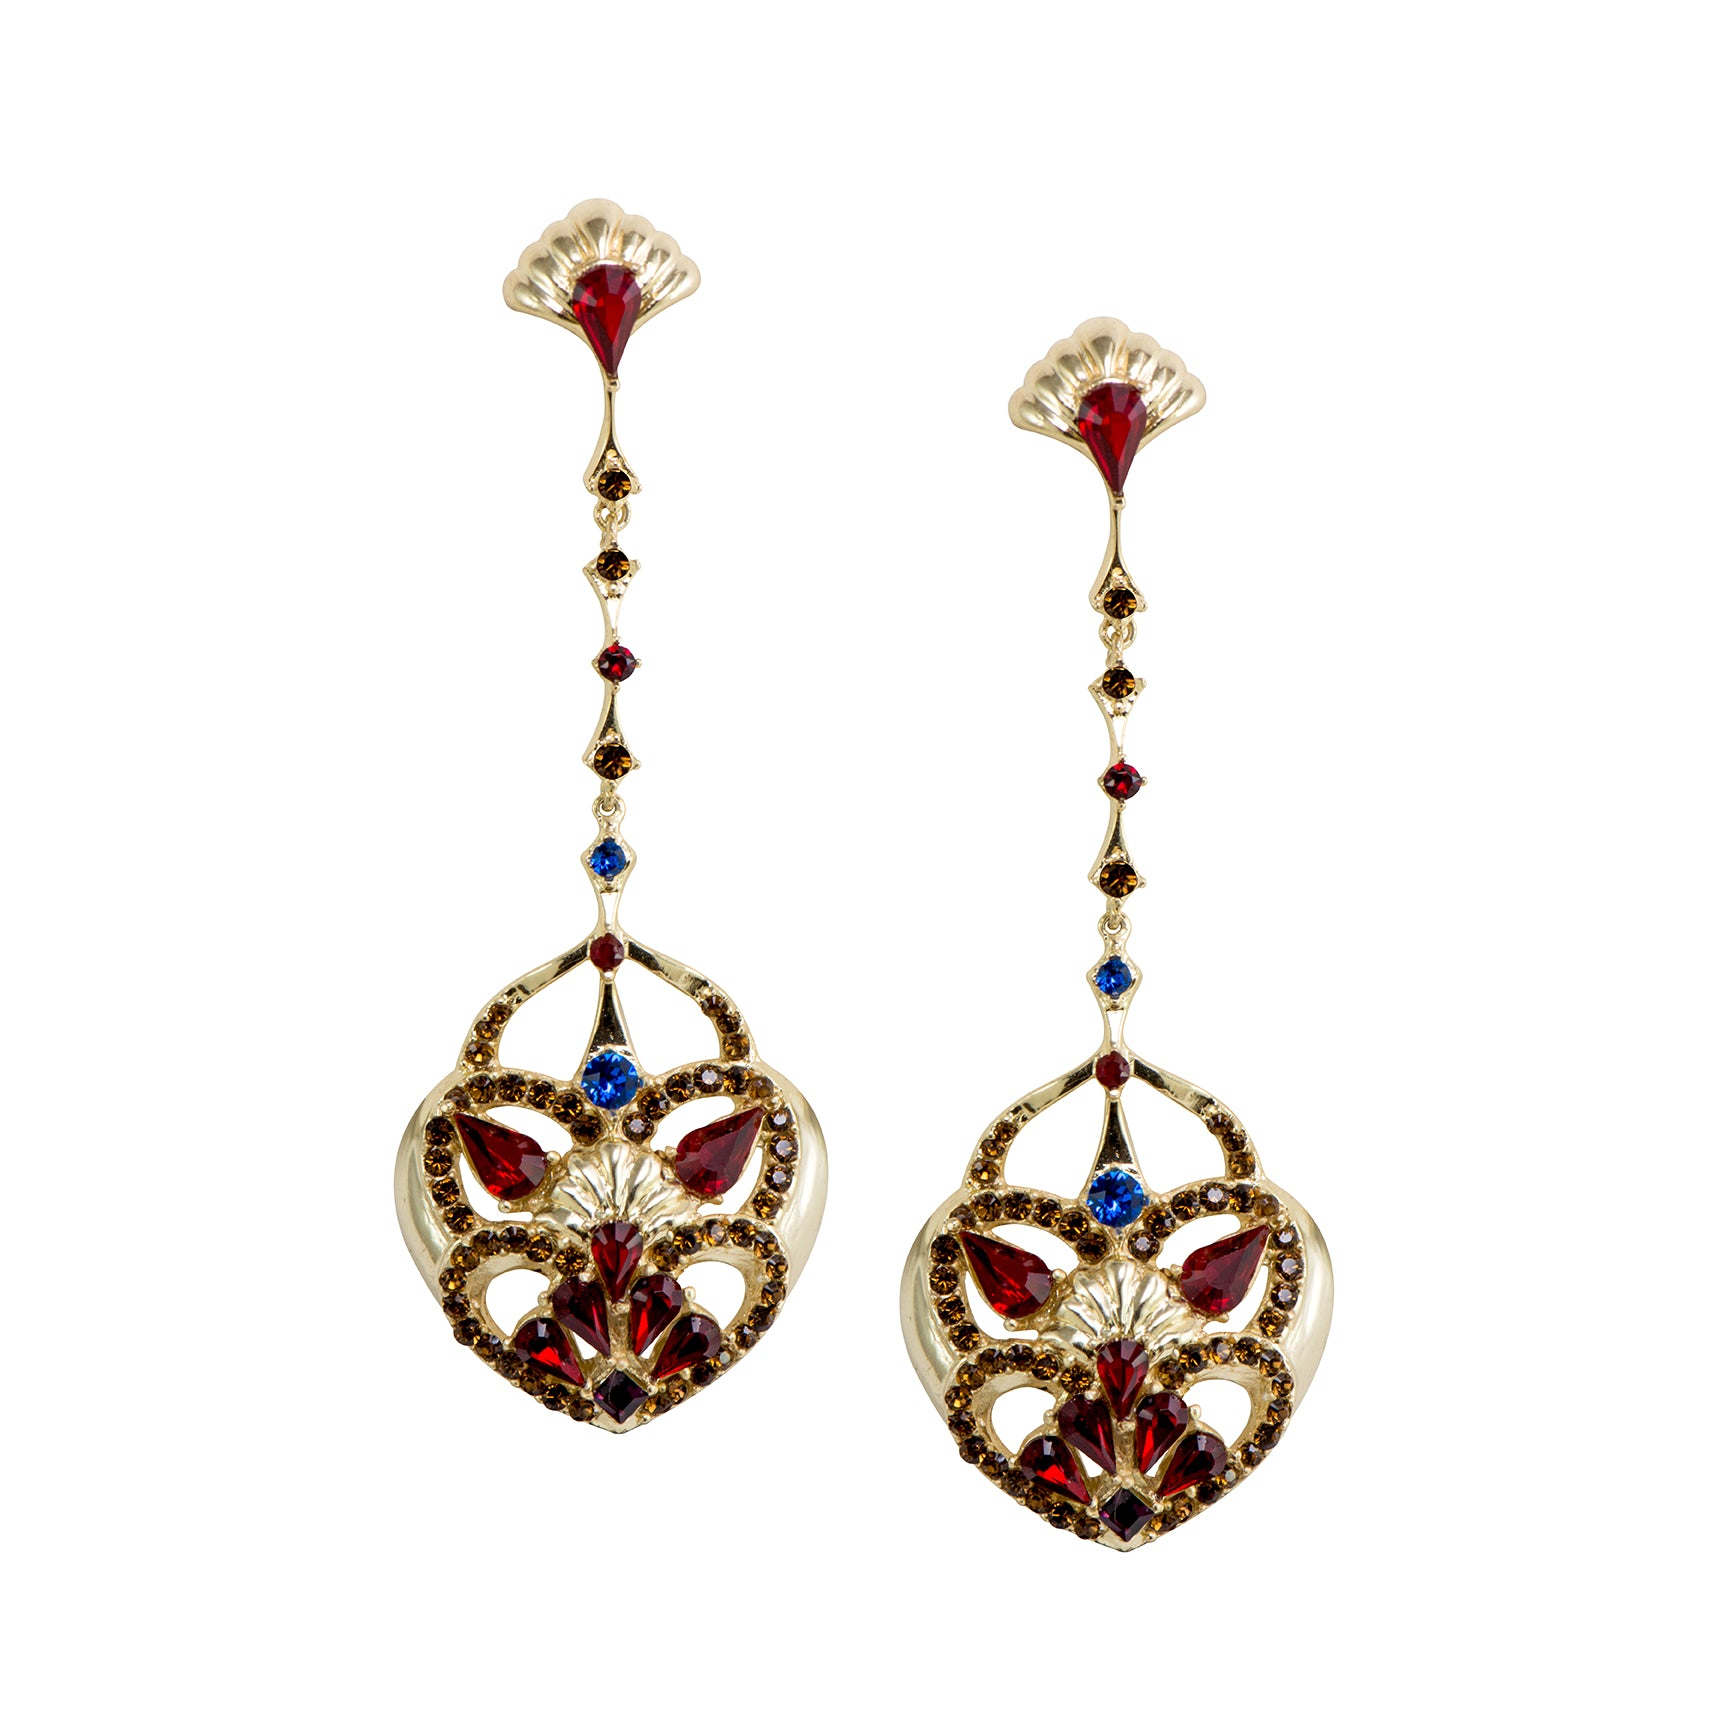 Burlesque Earrings